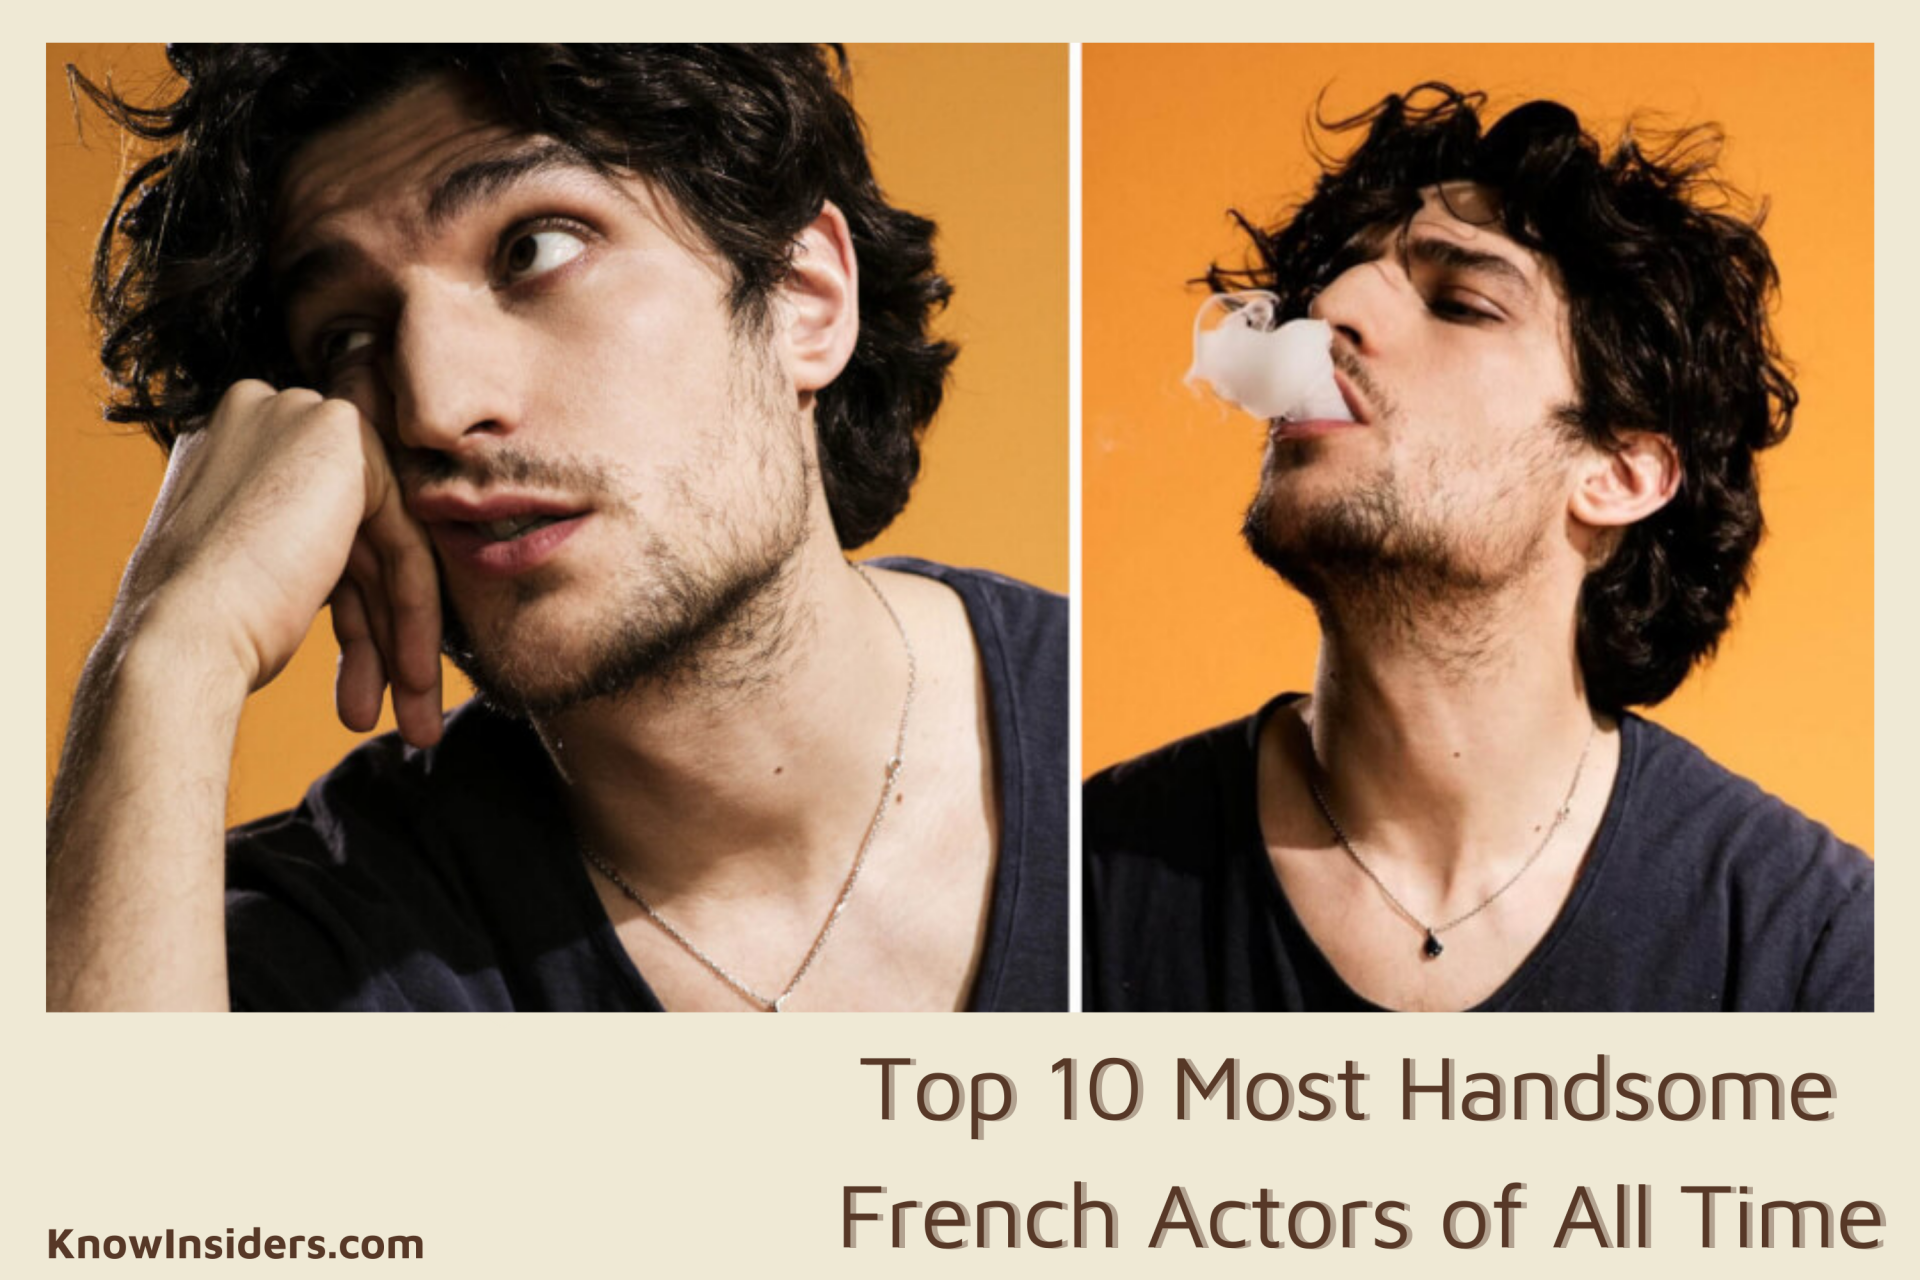 Top 10 Most Handsome French Actors of All Time